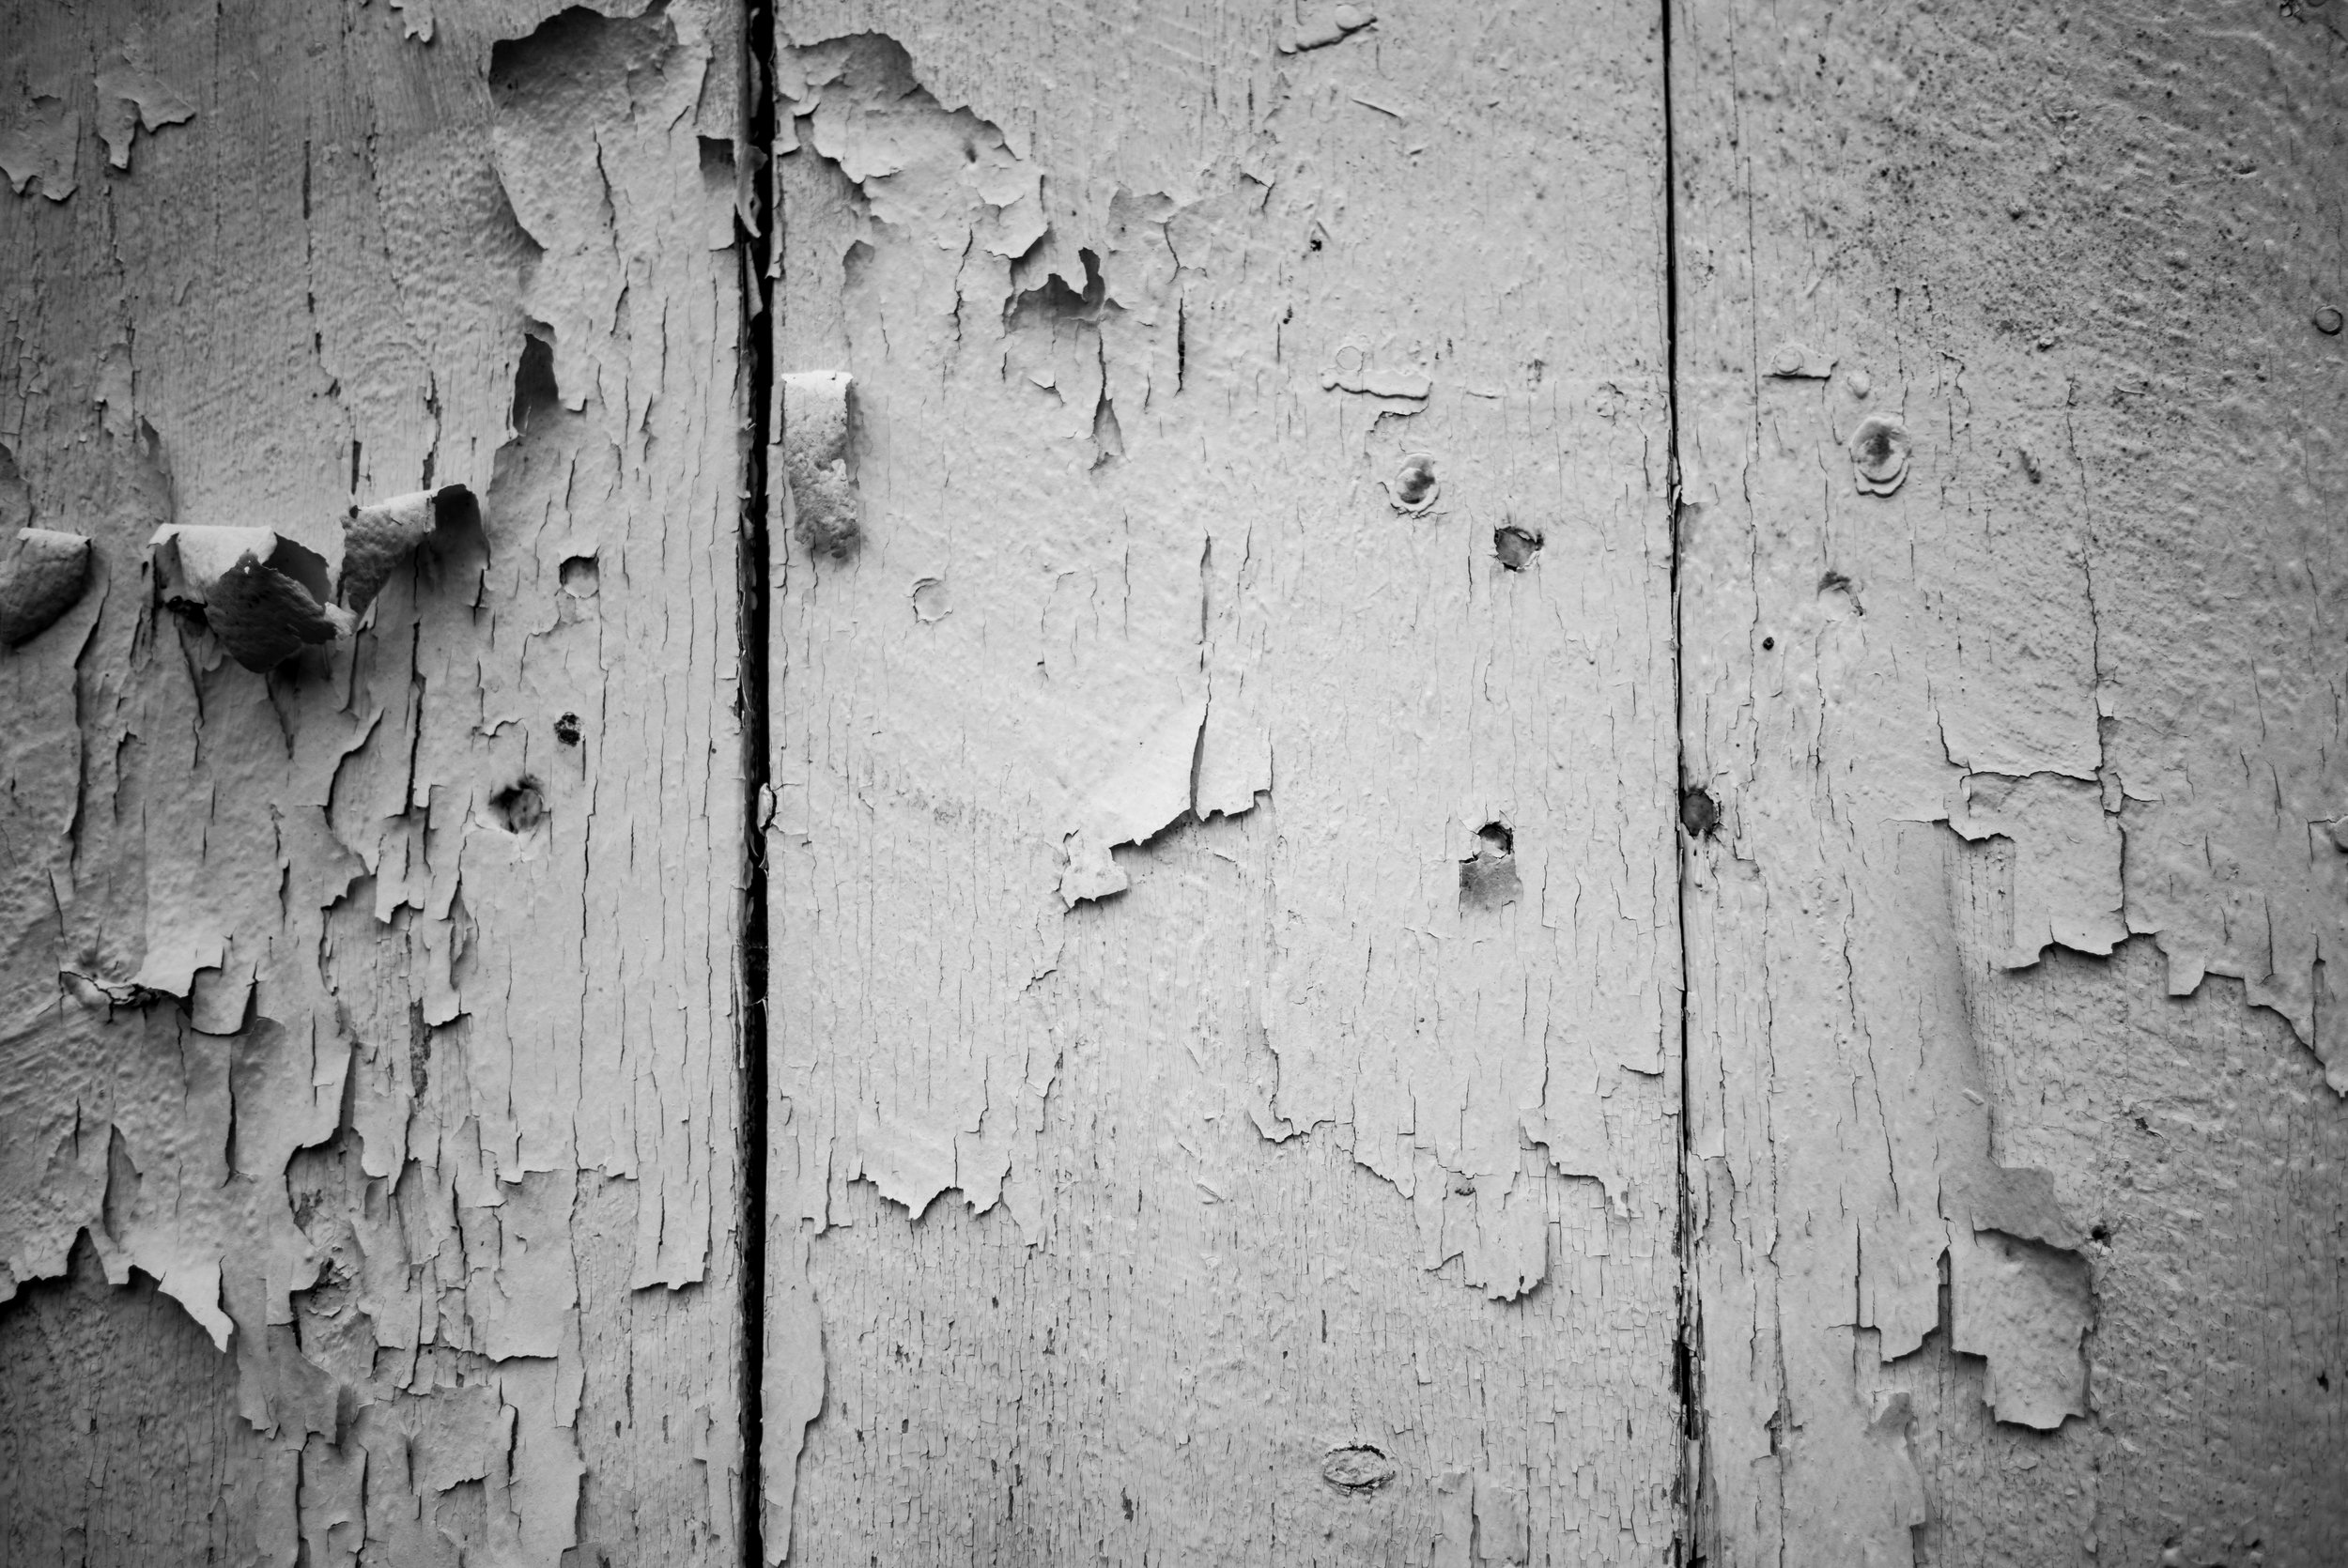 Peeling paint on the side of the shed